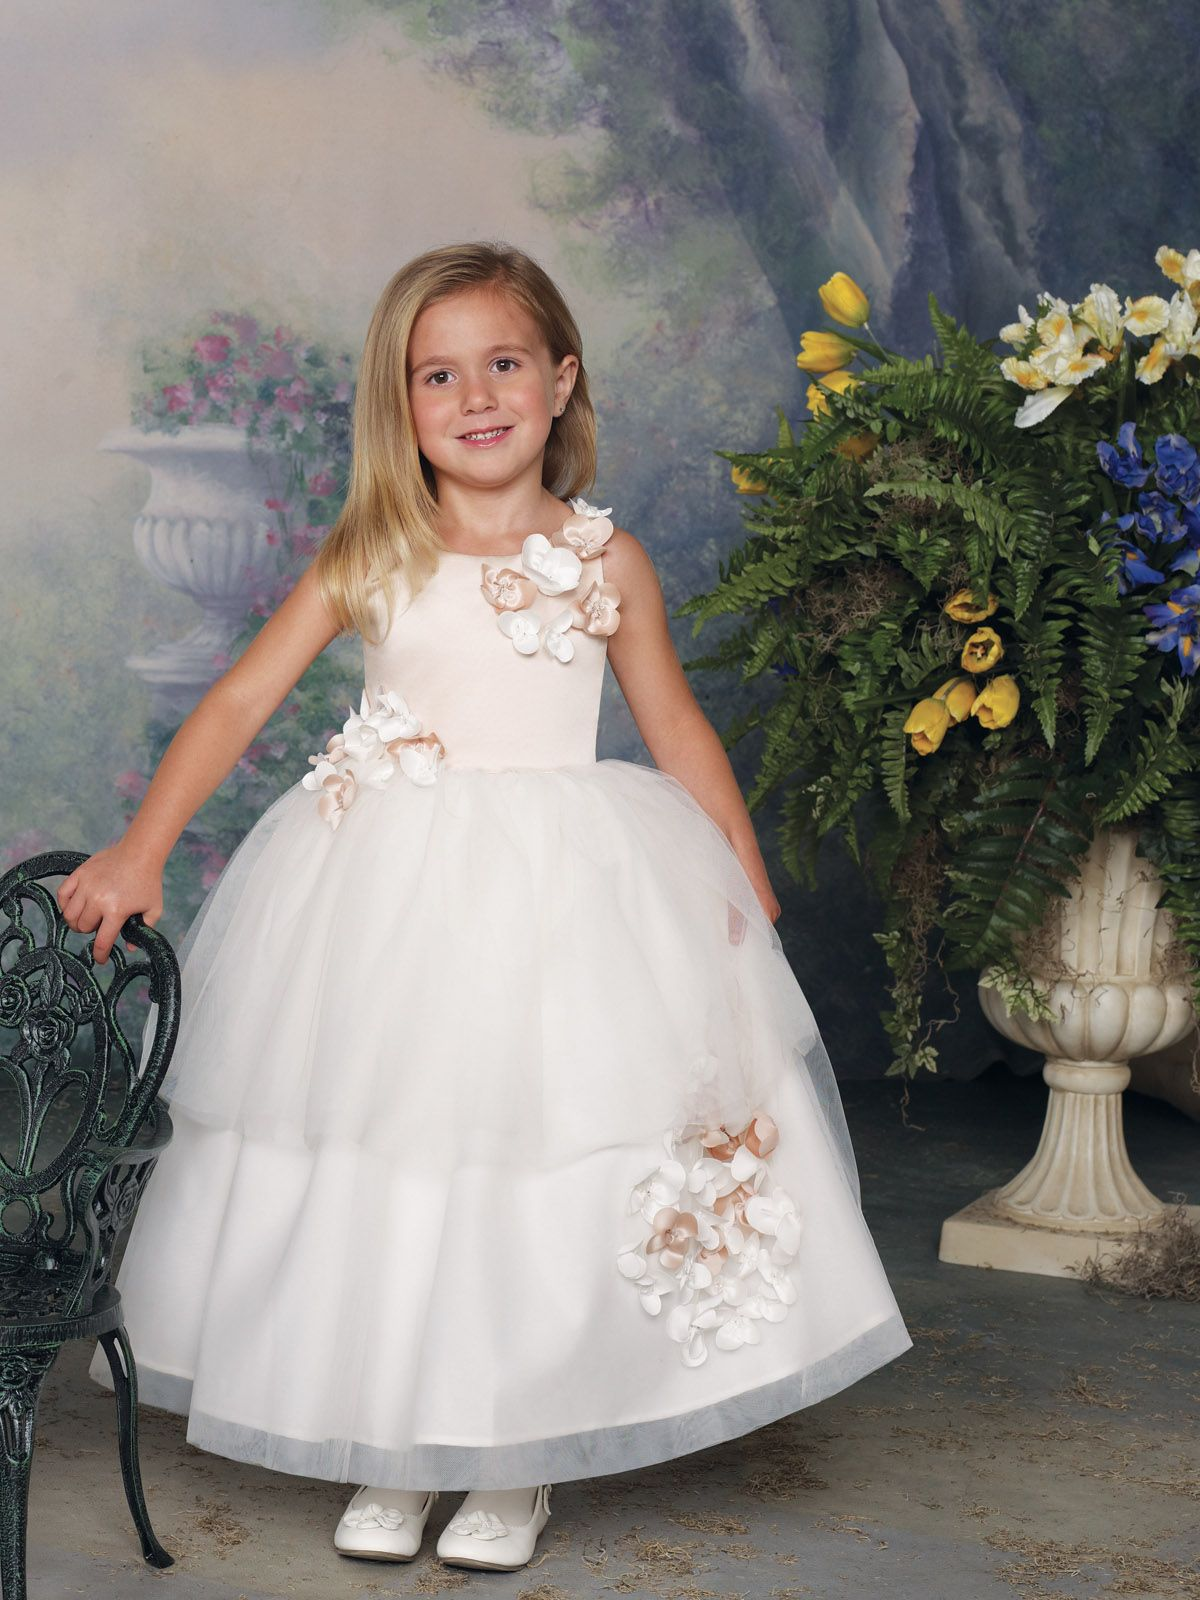 Sleeveless satin and tulle tea-length dress with jewel neckline, satin bodice accented with clusters of flowers, full dirndl double tiered tulle skirt features a matching cluster of flowers.Sizes: 2 - 16